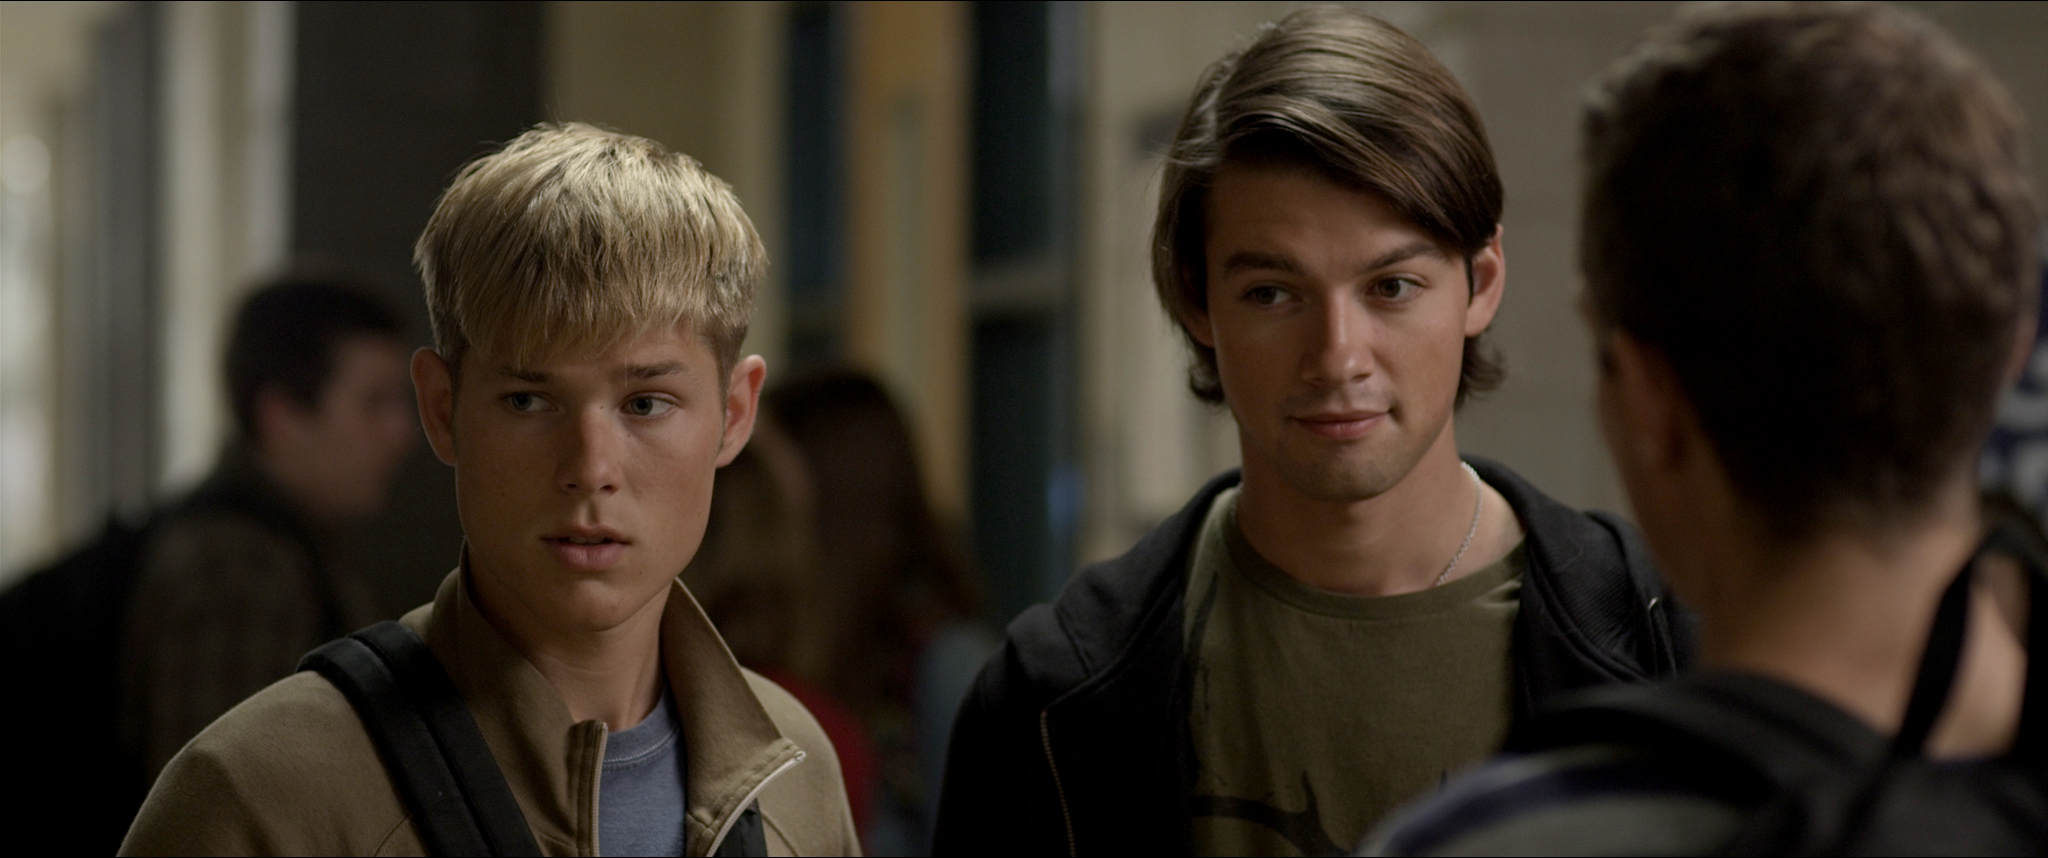 Mason Dye (left) and Ryan Munzert (right) deliver powerful performances in  Natural Selection .